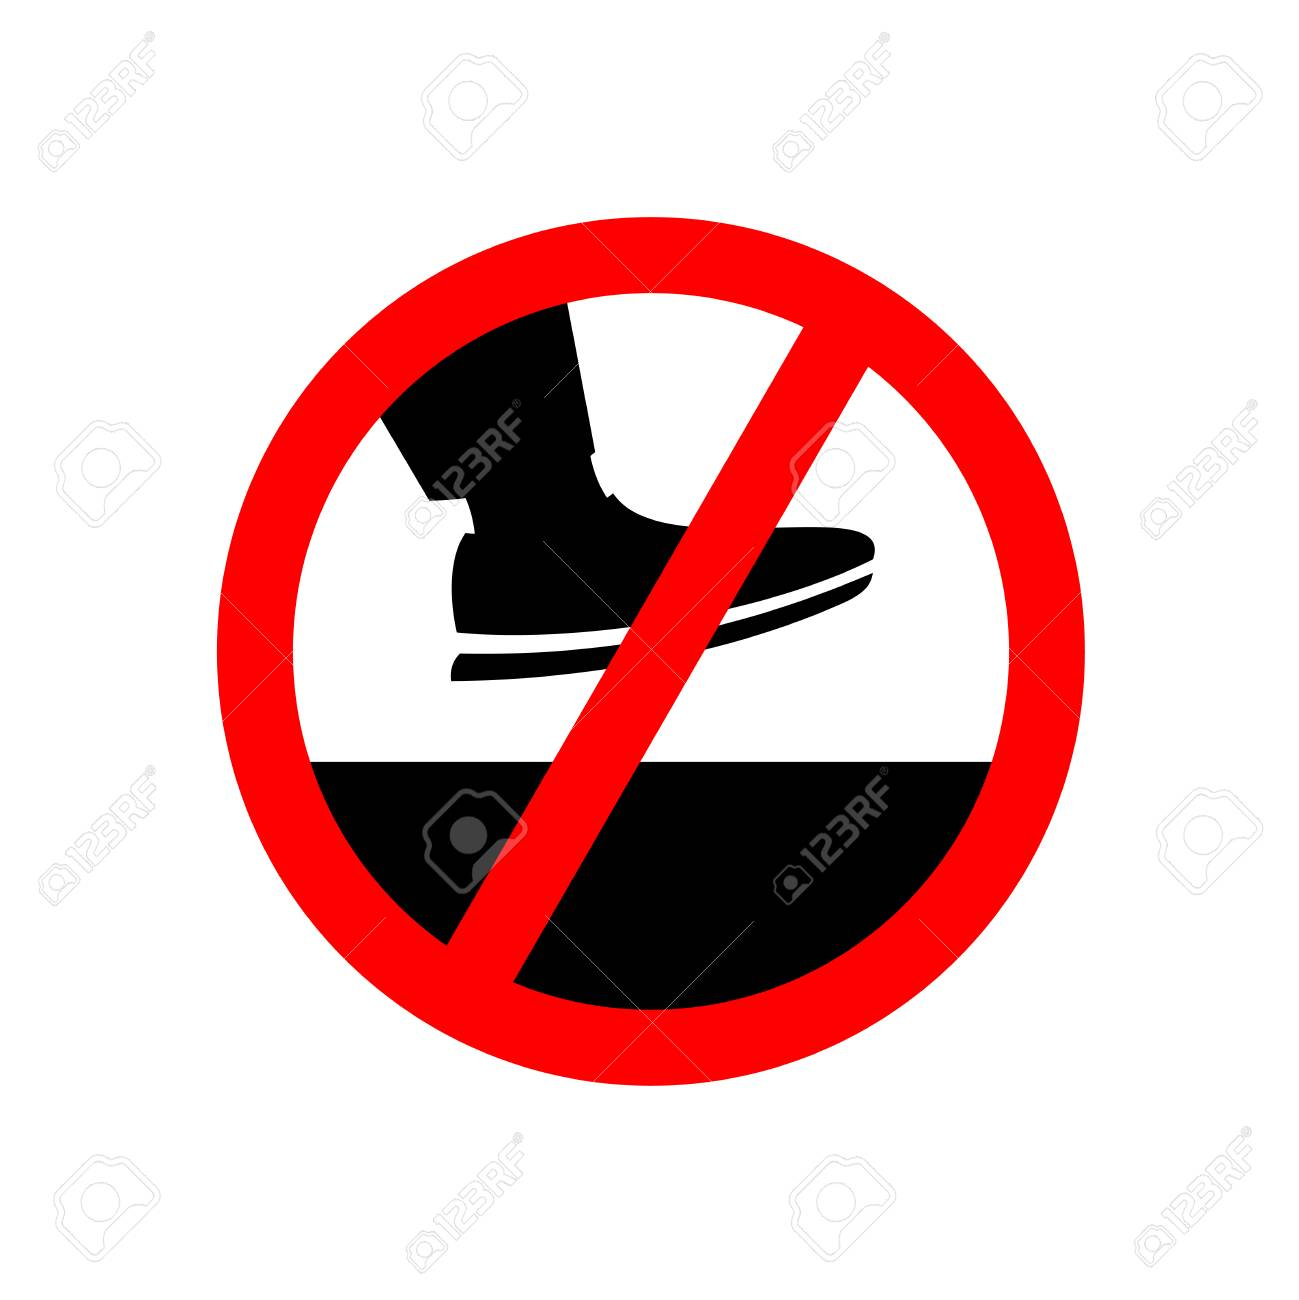 No step on the surface prohibition sign keep off foot symbol no step on the surface prohibition sign keep off foot symbol stock vector buycottarizona Choice Image